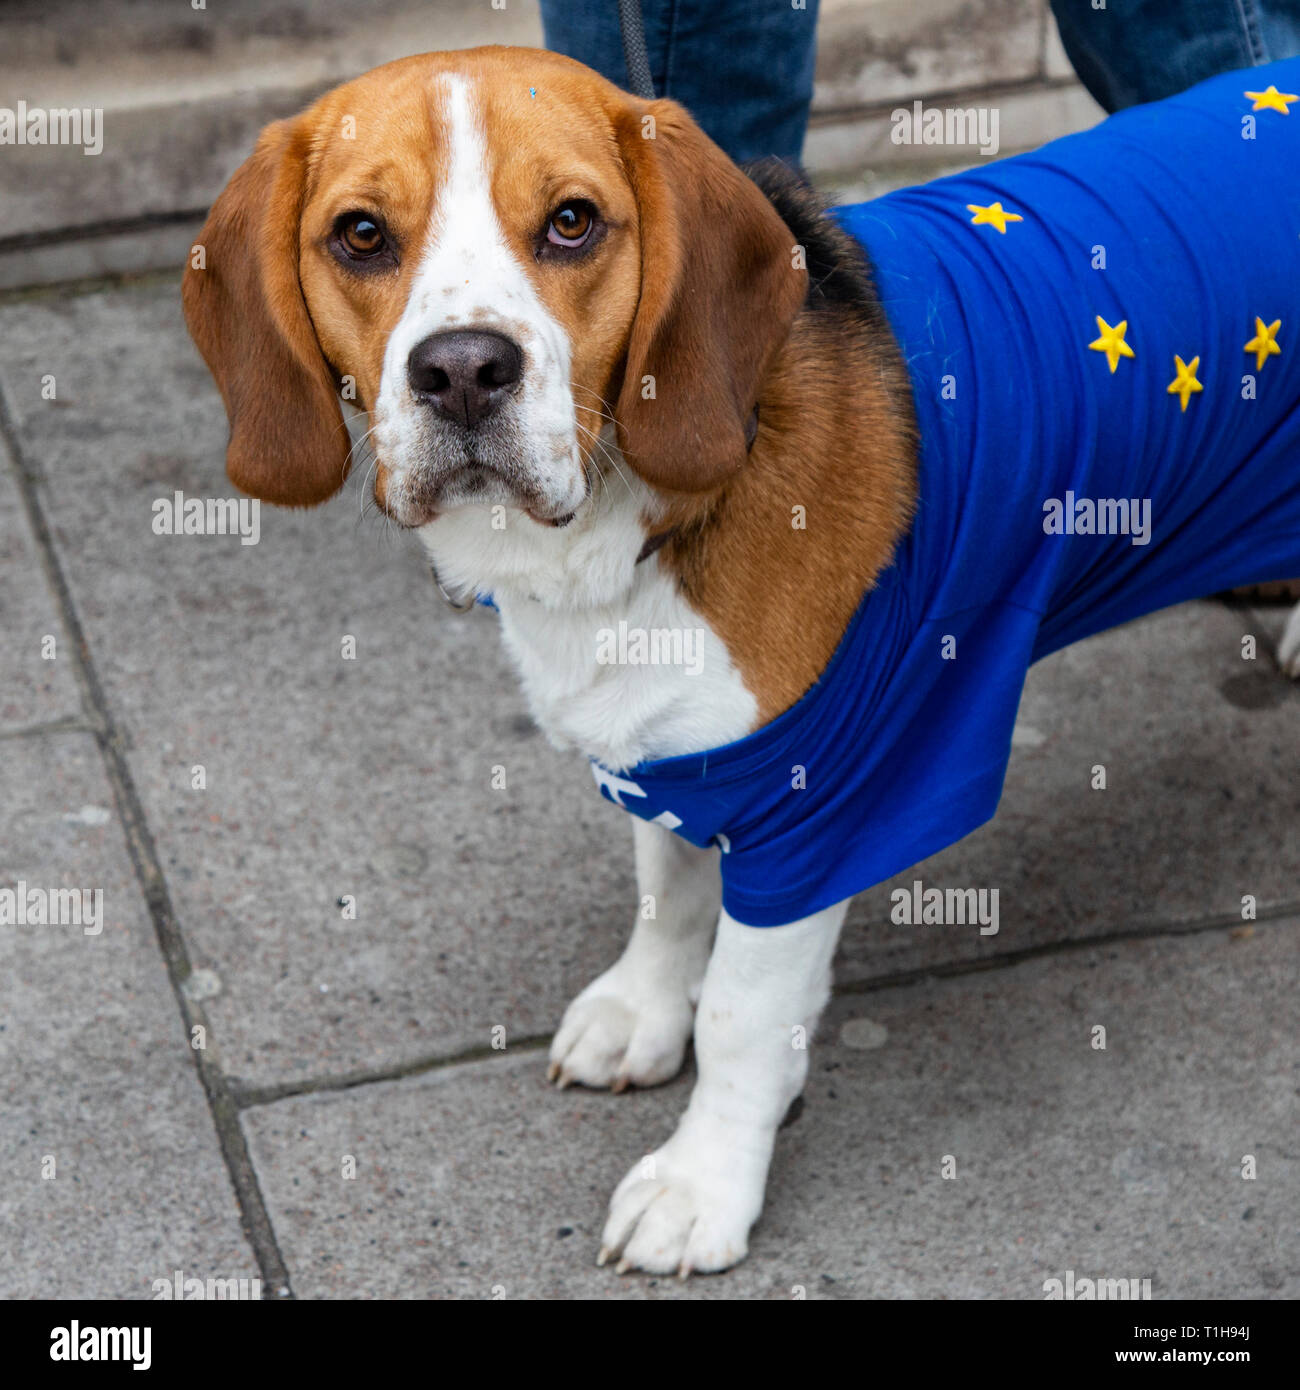 London, UK. 23 March 2019. Dog with an EU flag. Remain supporters and protesters take part in a march to stop Brexit in Central London calling for a People's Vote. - Stock Image